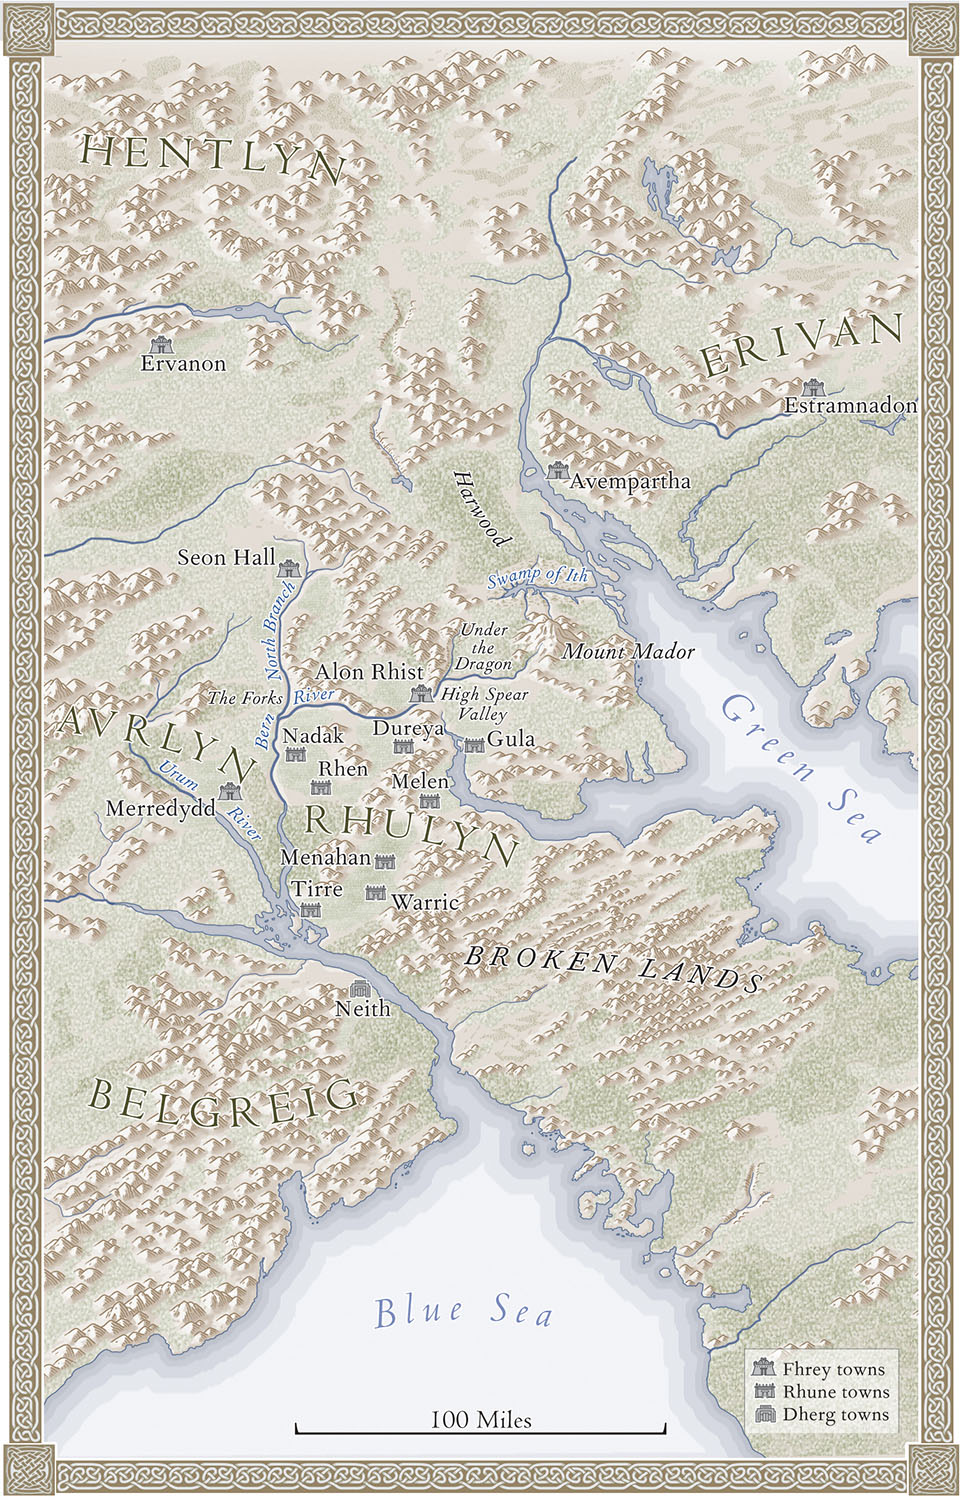 For   Age of Myth,    by Michael J. Sullivan  (Del Rey, 2016). Map copyright © David Lindroth Inc. An imaginary world, fleshed out from the author's sketch.